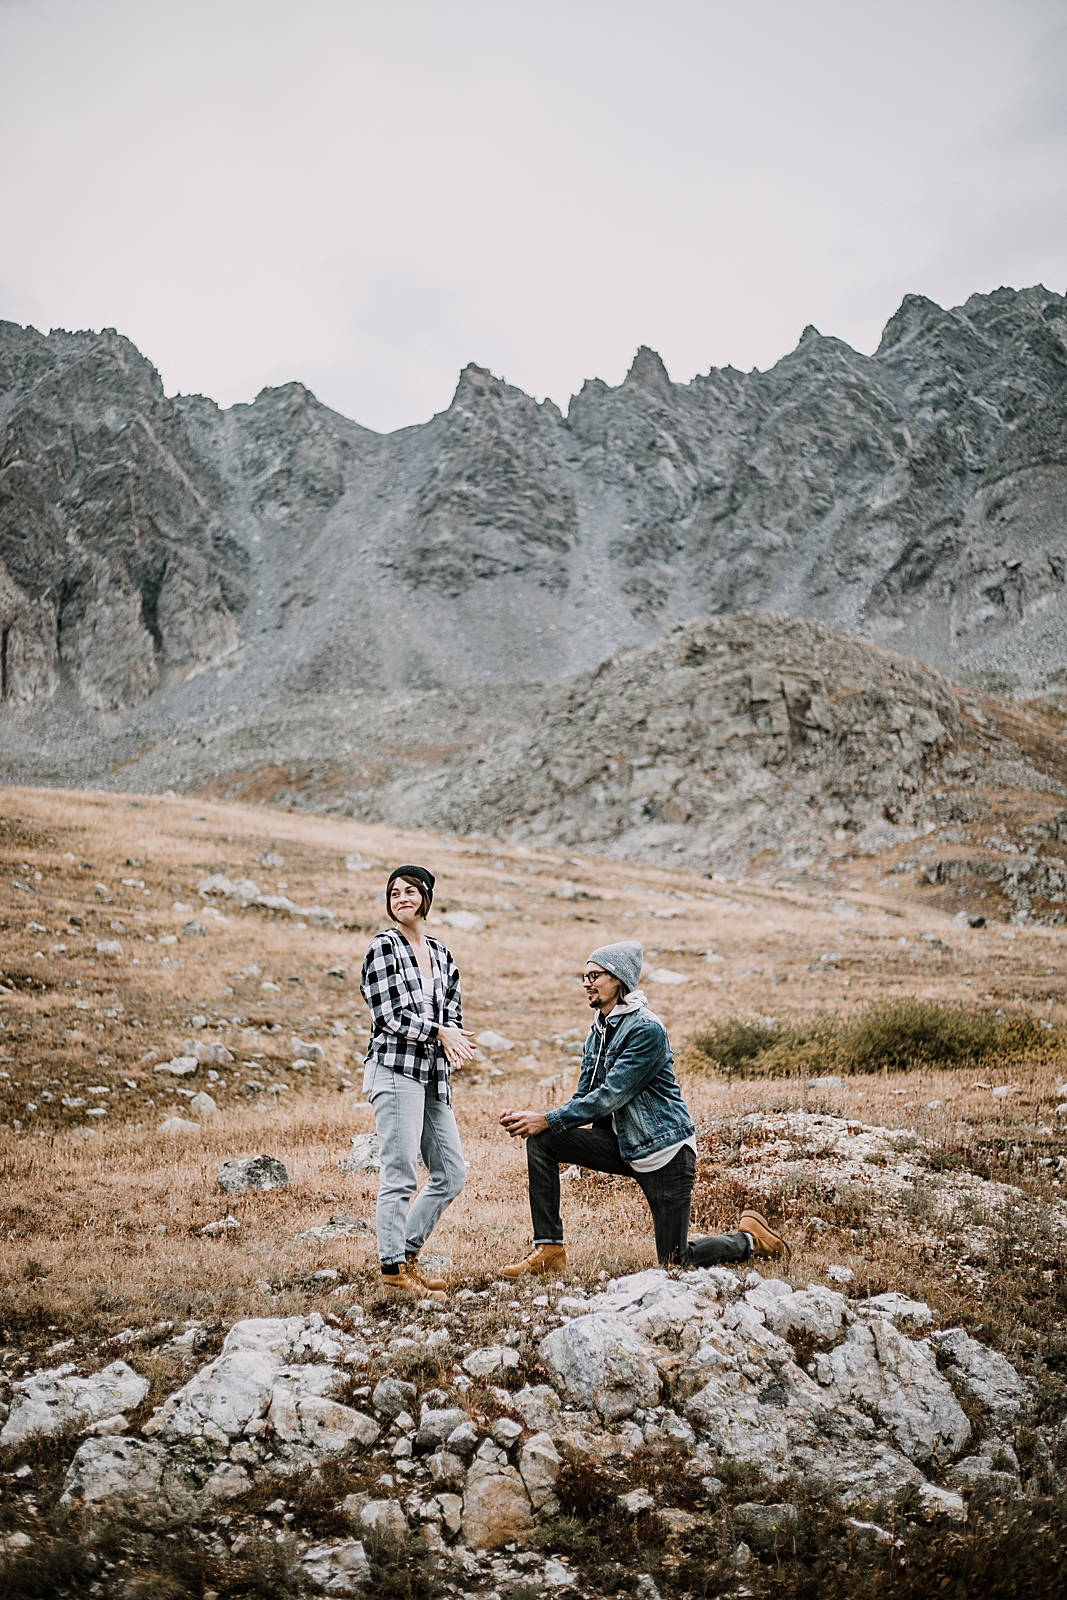 man proposing, colorado mountain proposal, hike mayflower gulch, mayflower gulch proposal, mayflower gulch elopement, mayflower gulch wedding, mayflower gulch engagments, leadville elopement